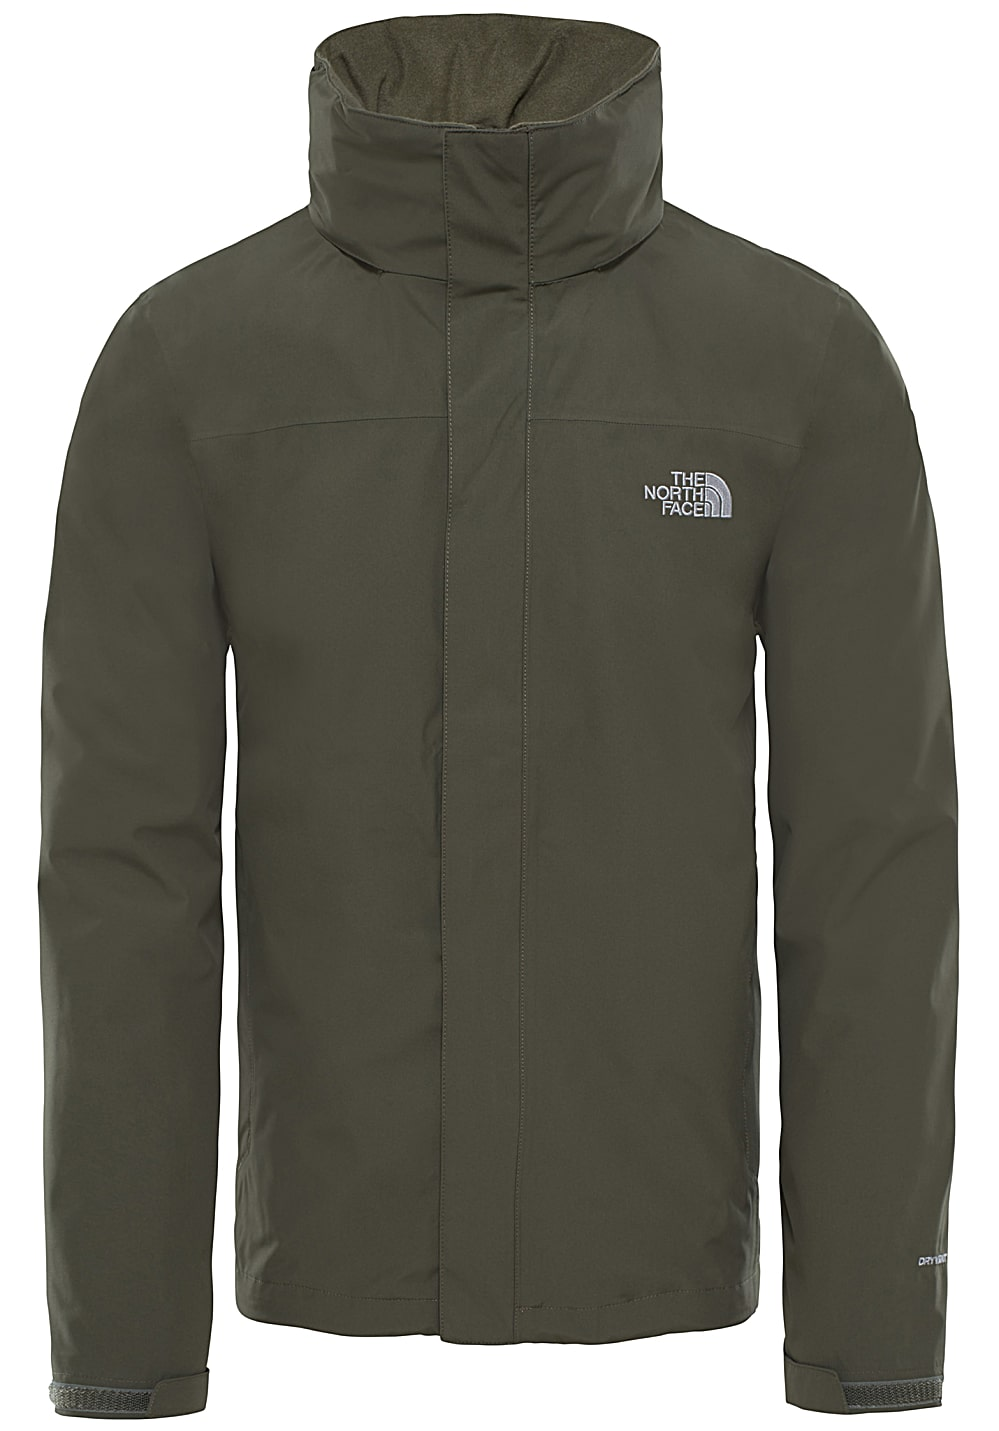 THE NORTH FACE Sangro - Funktionsjacke für Herren Grün